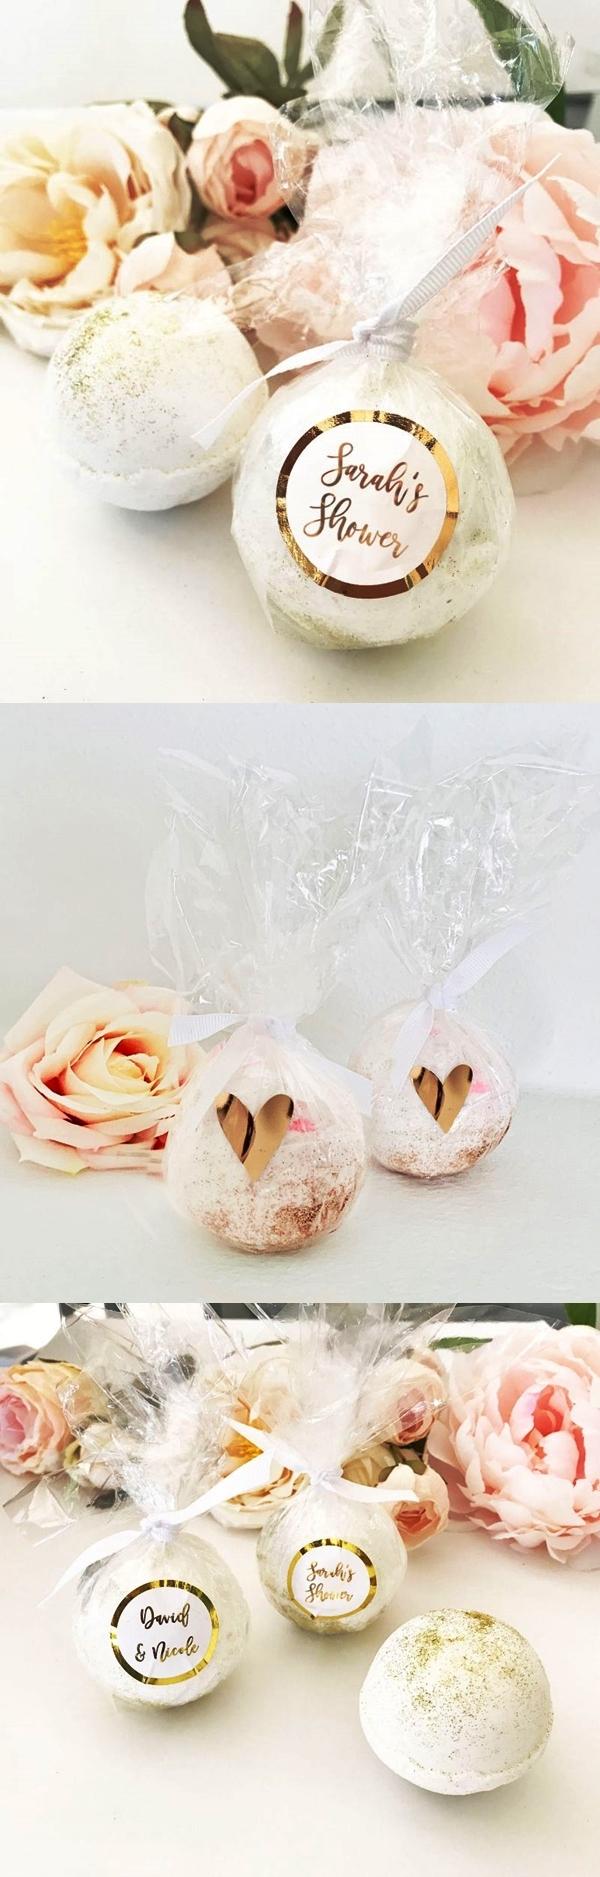 Event Blossom Personalizable Custom Bath Bomb Foil Favors